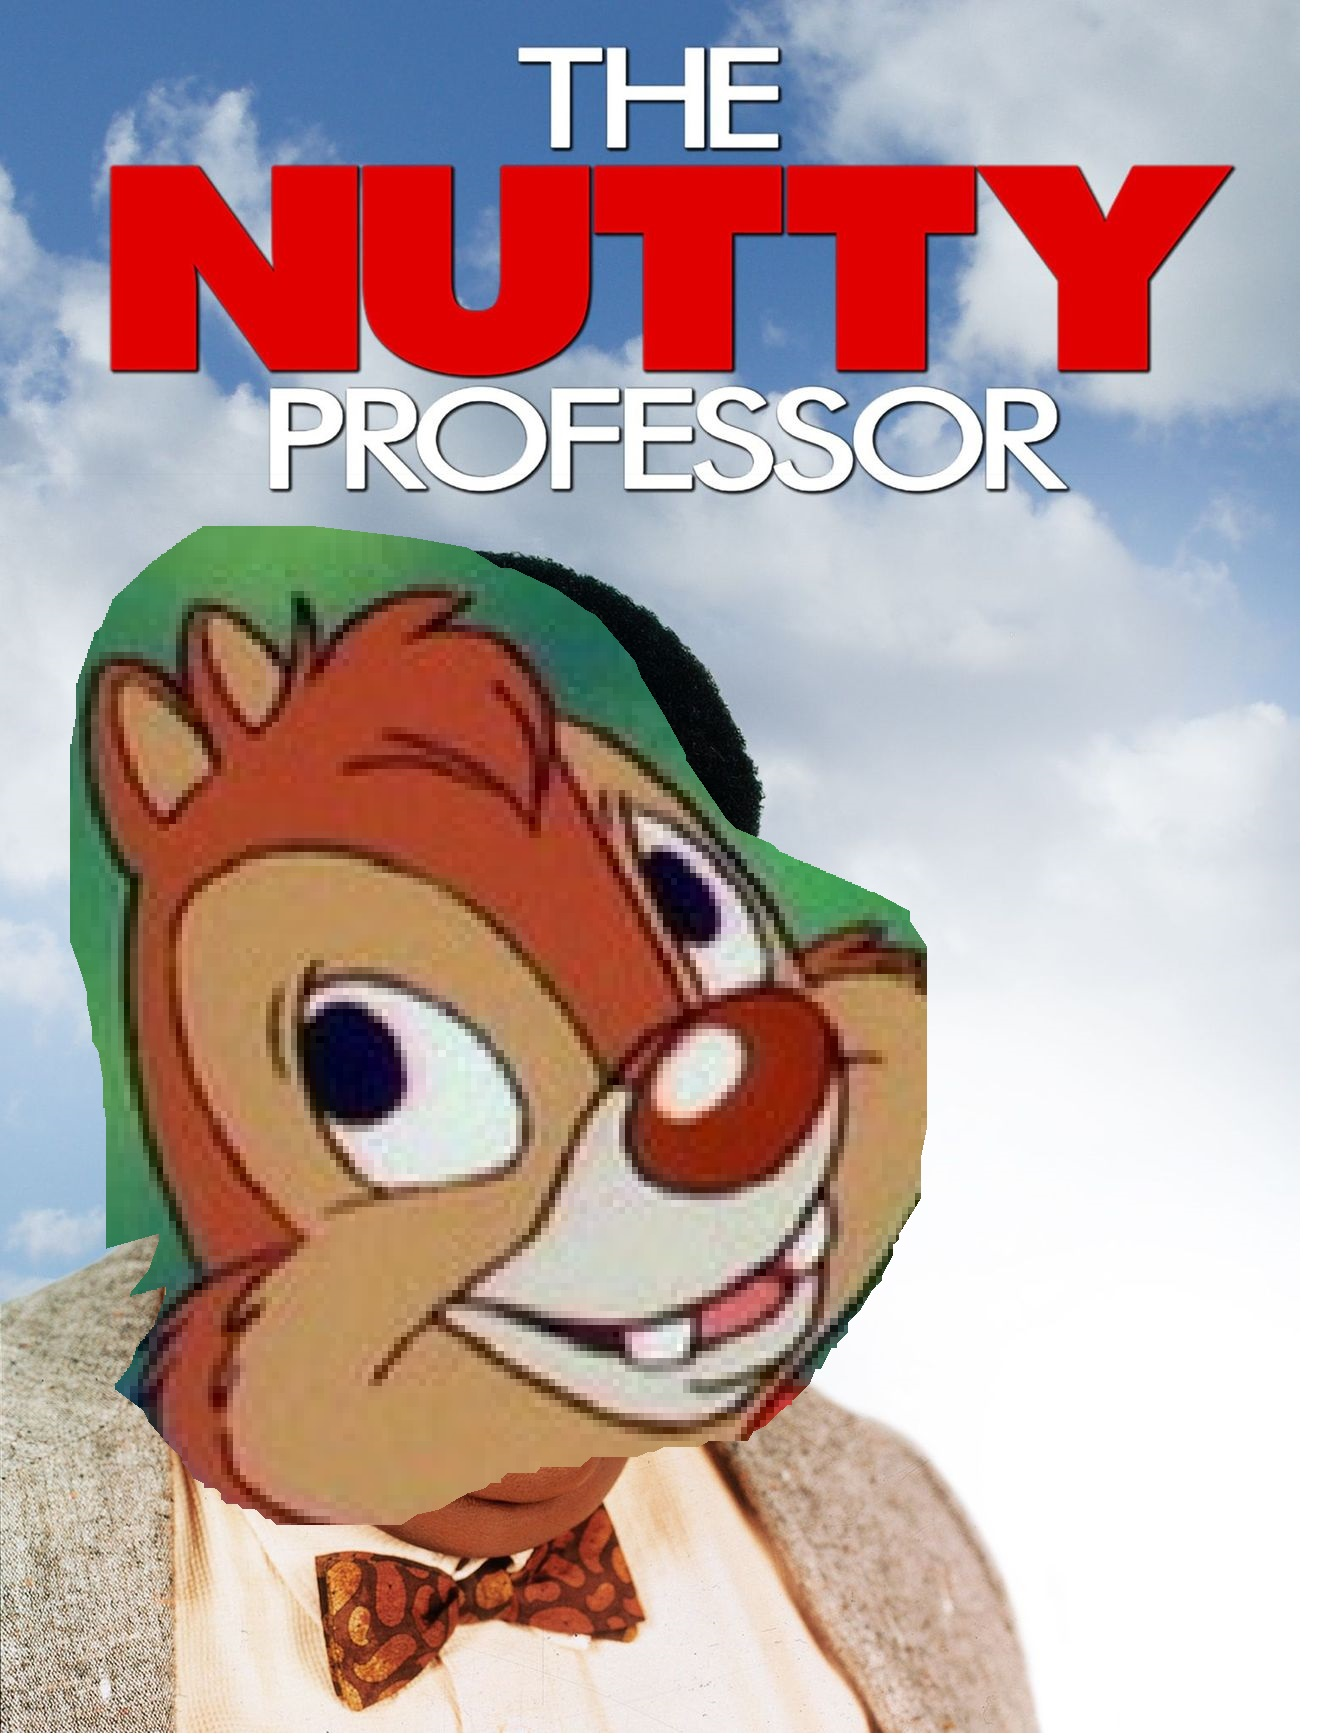 The Nutty Professor (397Movies Animal Style)